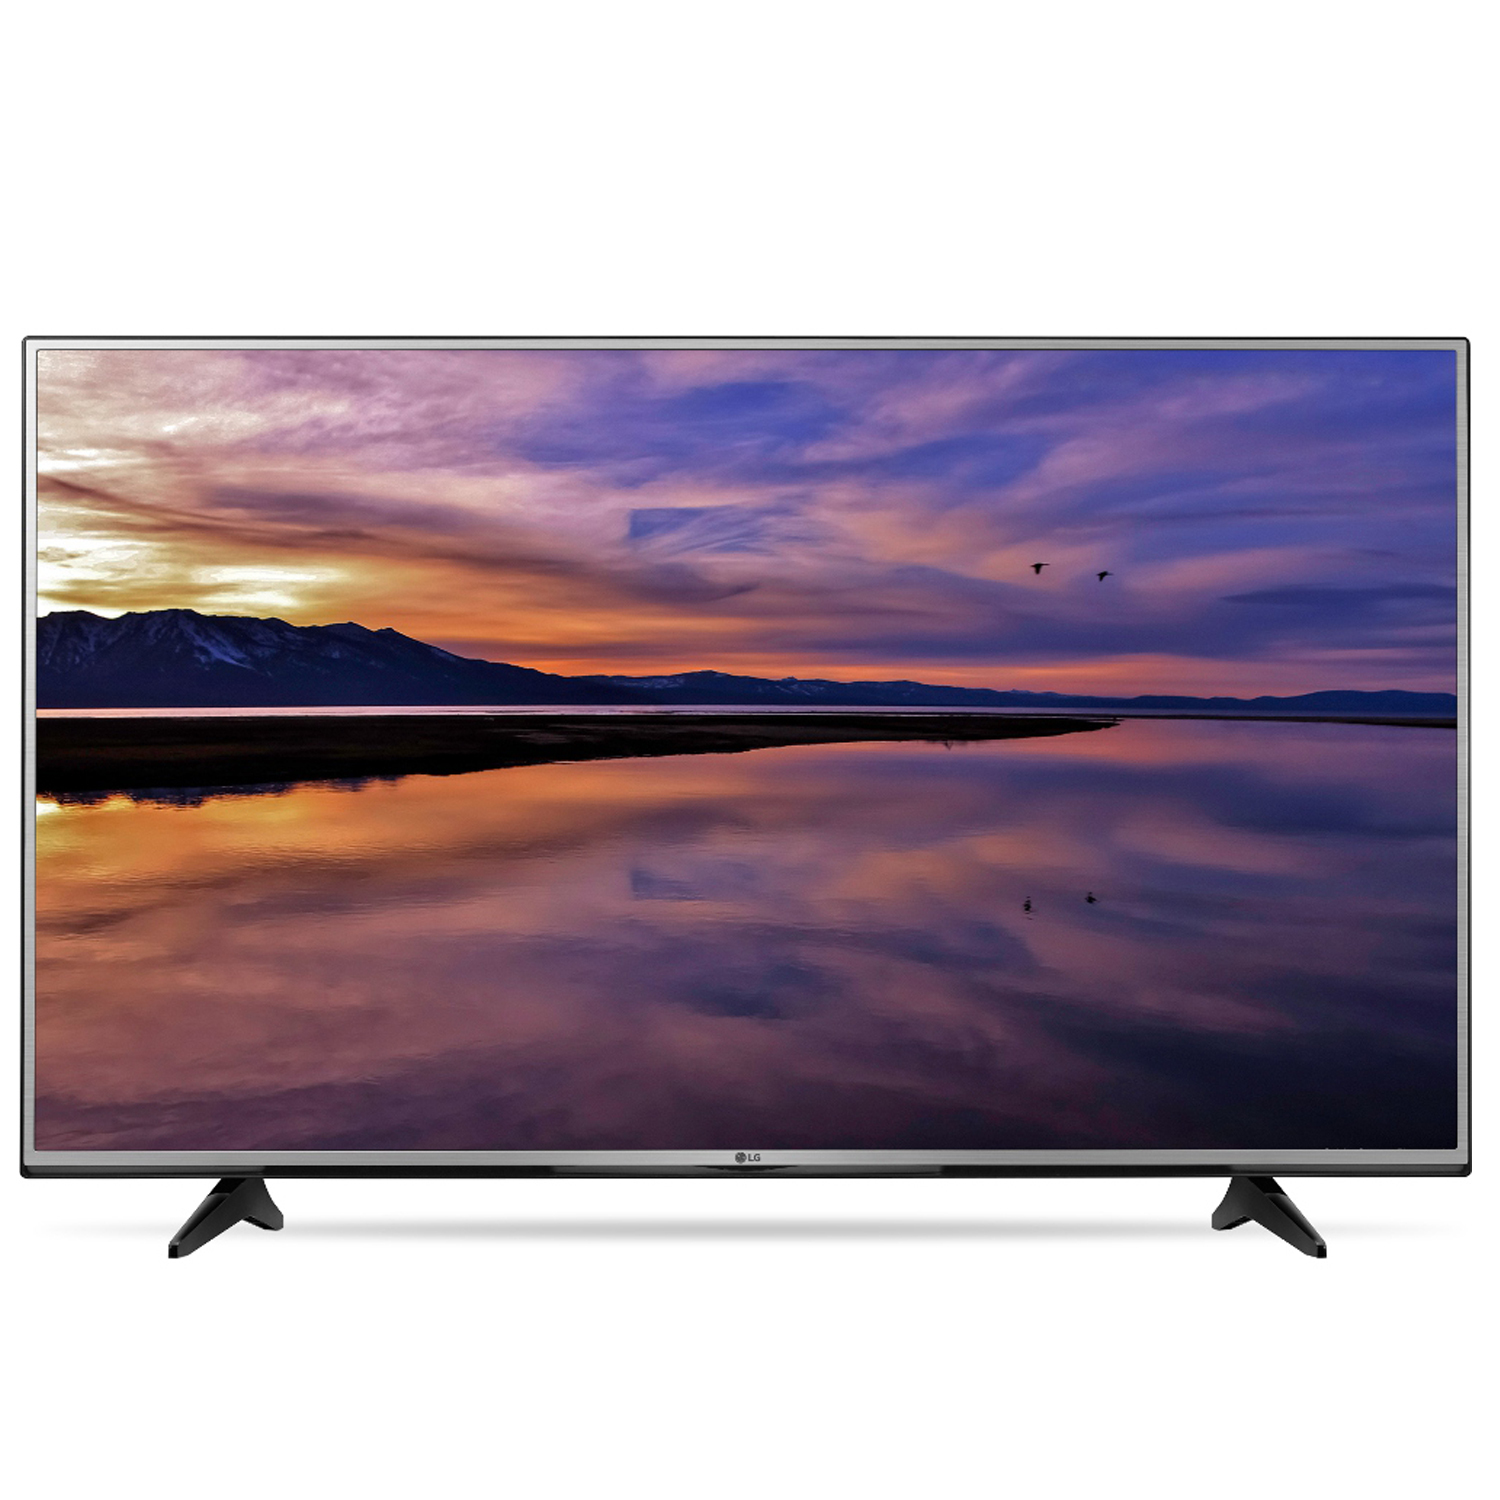 lg 60uh605v 4k led smart tv 60 zoll tripletuner hdmi wlan neu ovp ebay. Black Bedroom Furniture Sets. Home Design Ideas